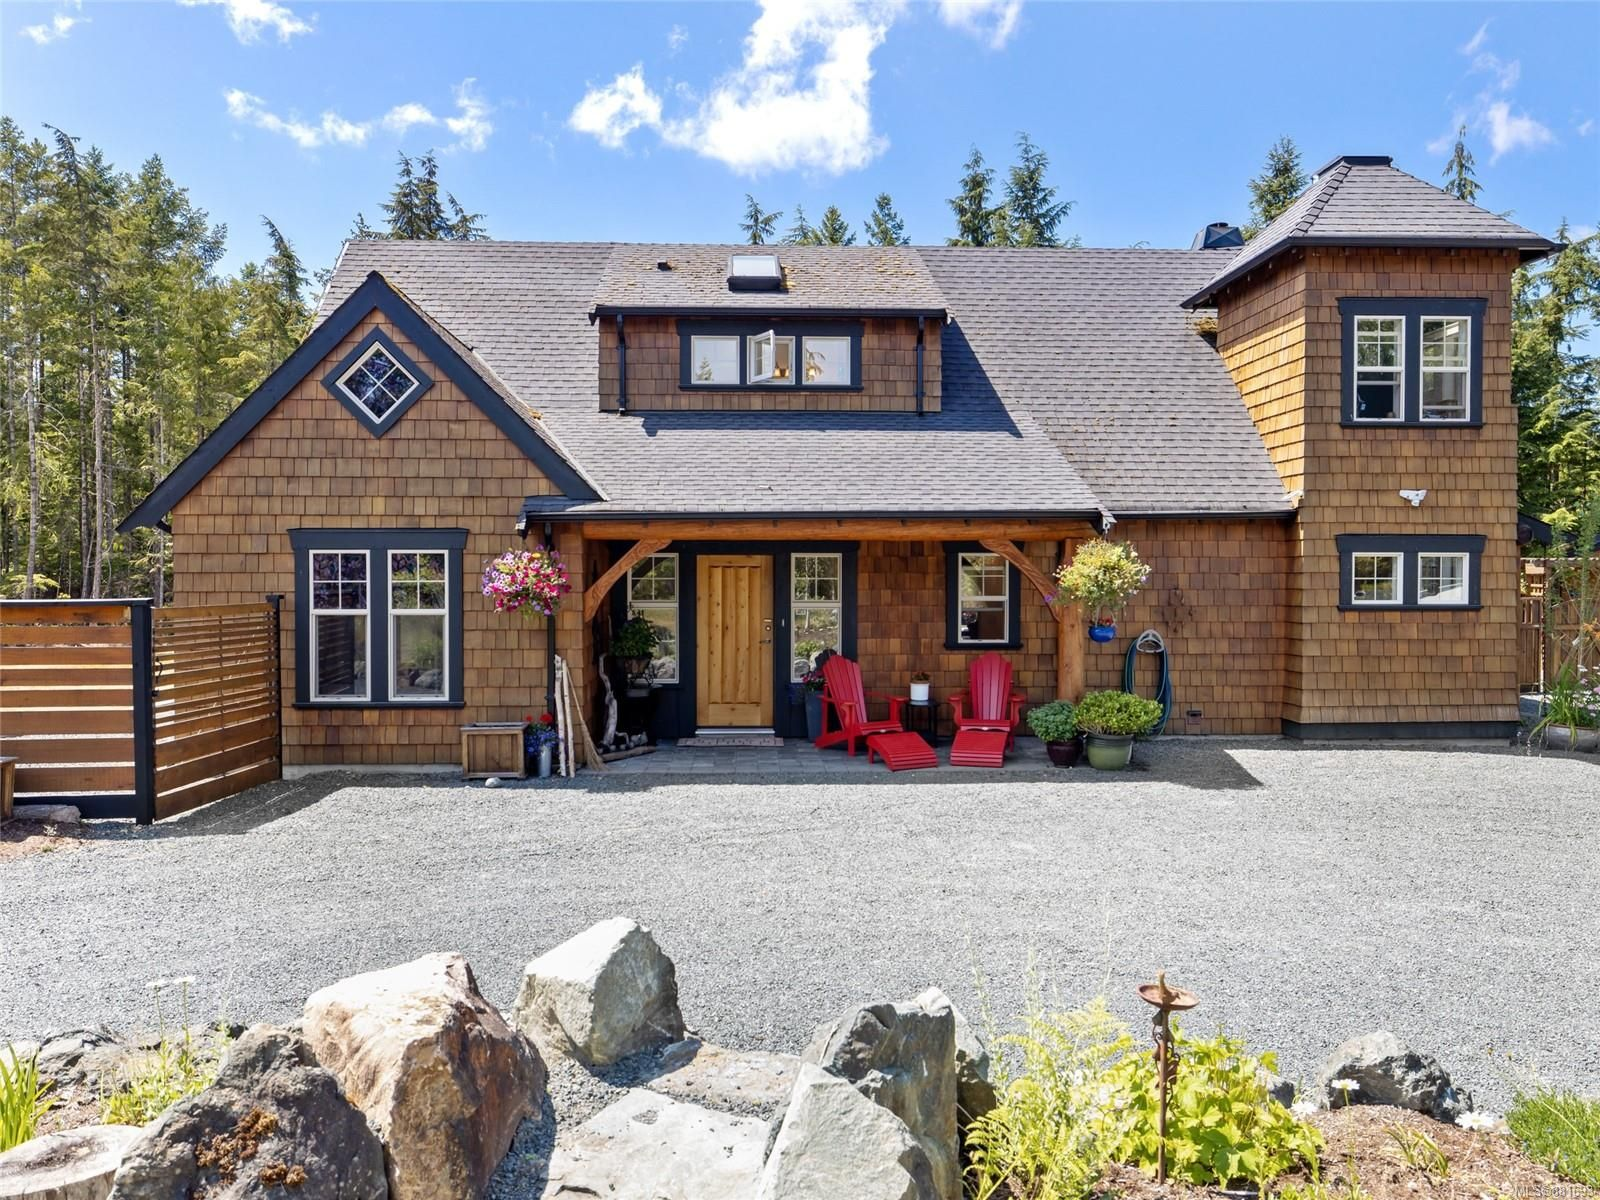 Main Photo: 1284 Meadowood Way in : PQ Qualicum North House for sale (Parksville/Qualicum)  : MLS®# 881693